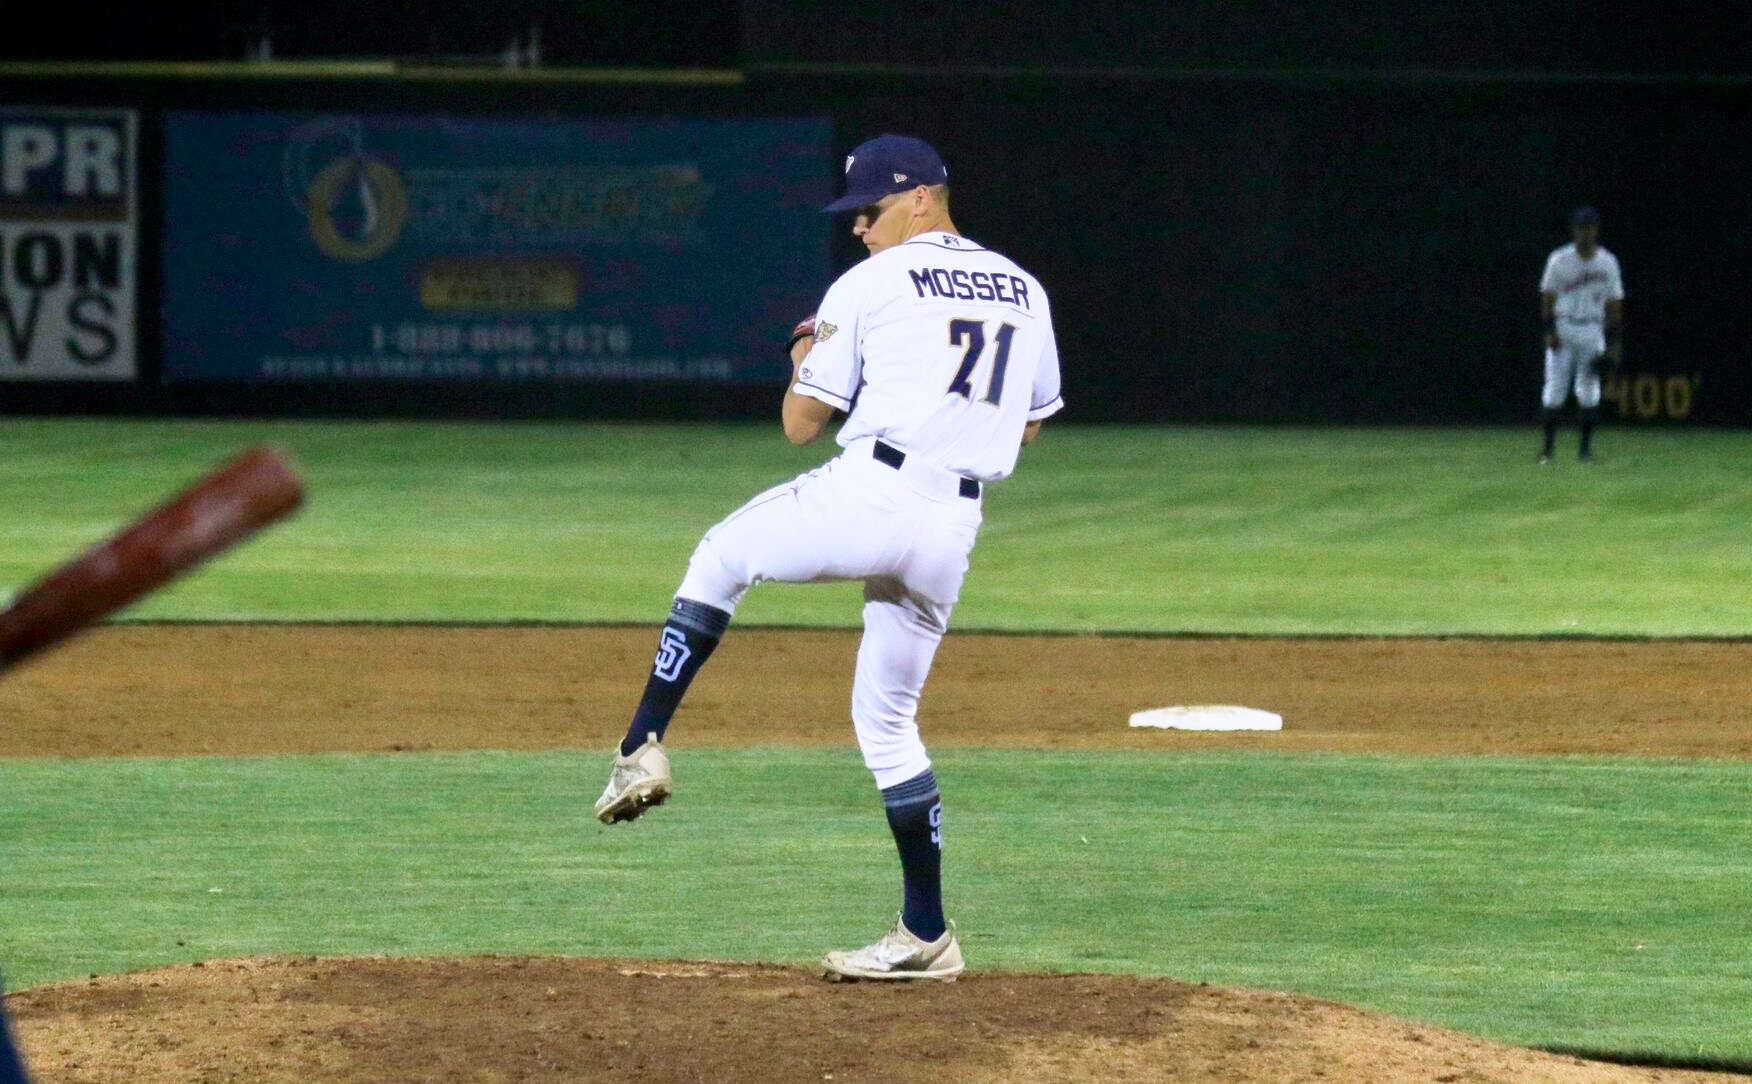 Gabe Mosser pitching for the Tri-City Dust Devils of the Northwest League. Photo Credit: Judy Simpson/Tri-City Dust Devils